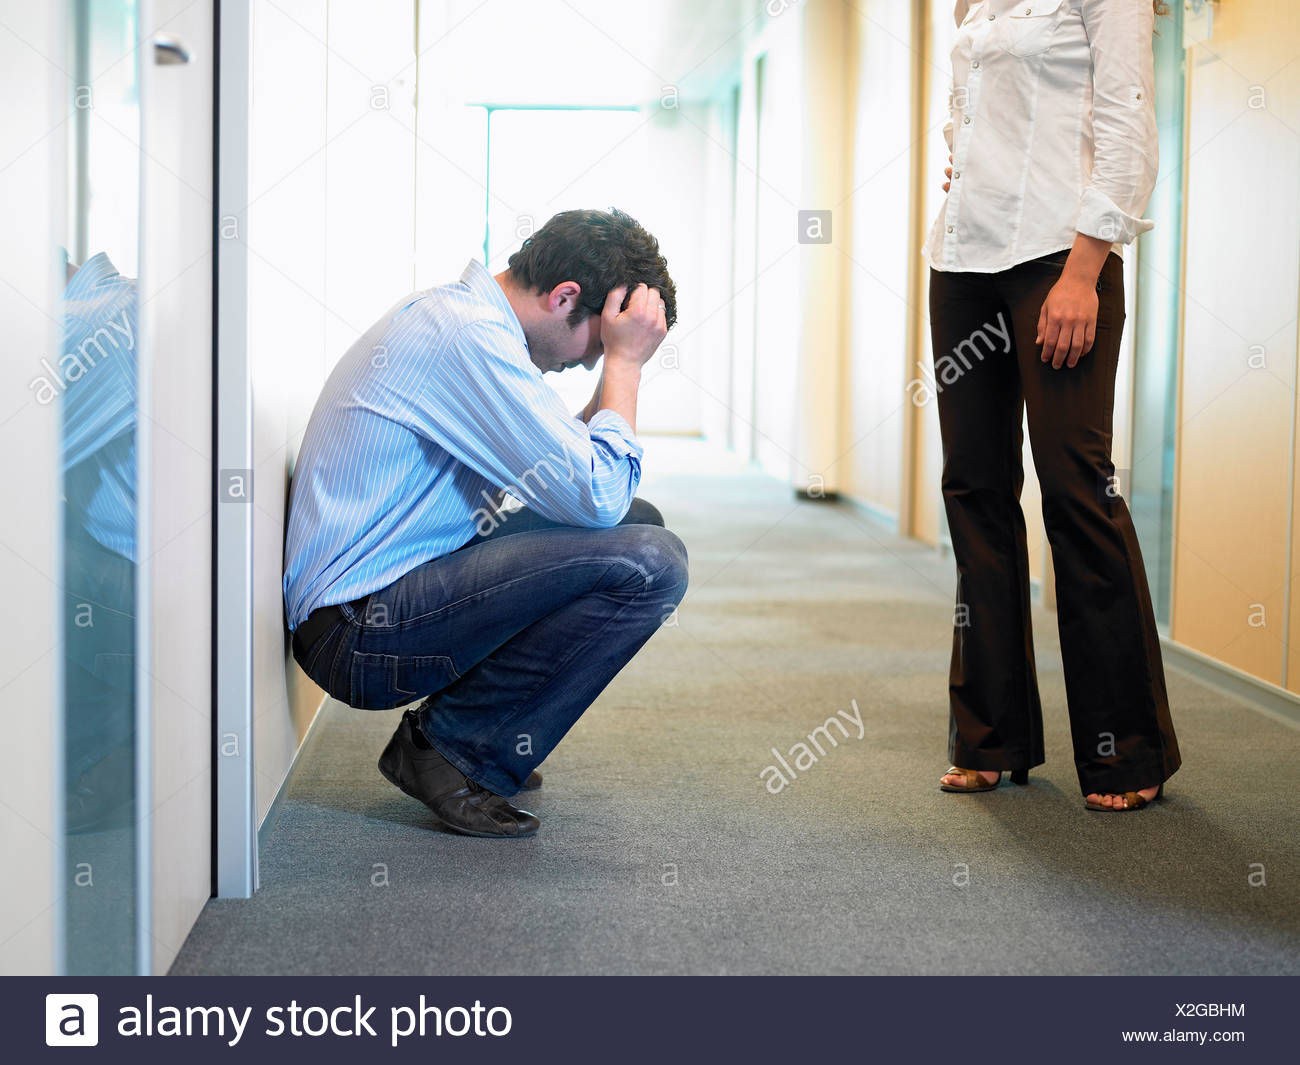 Couple having problems at work - Stock Image